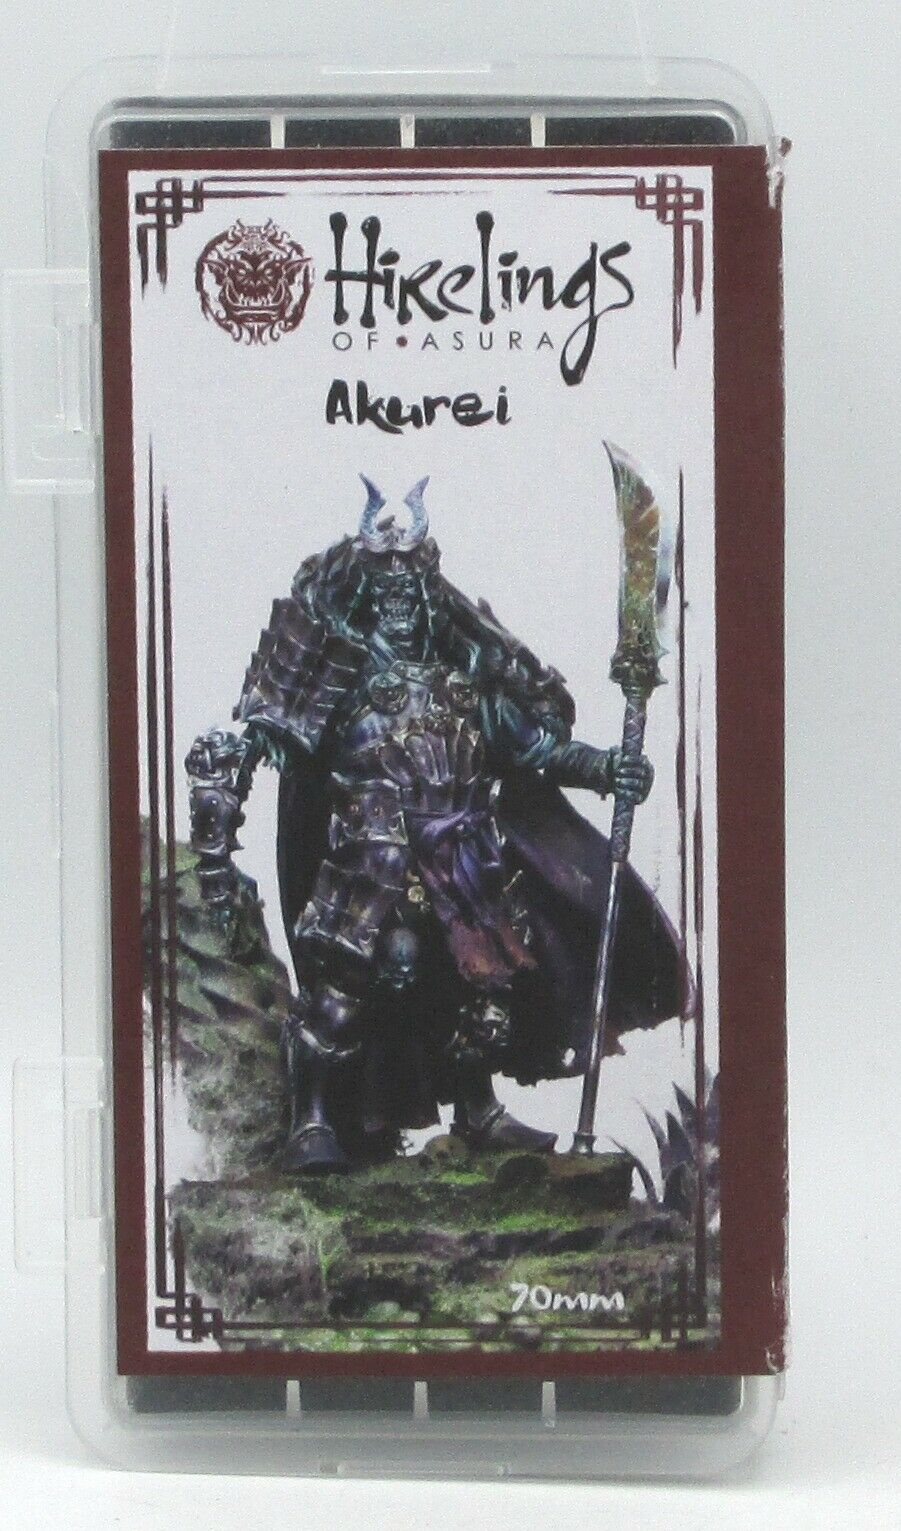 Hirelings of Asura HA4 Akurei Undead Orc (70mm) Oriental Skeleton Warrior Hero